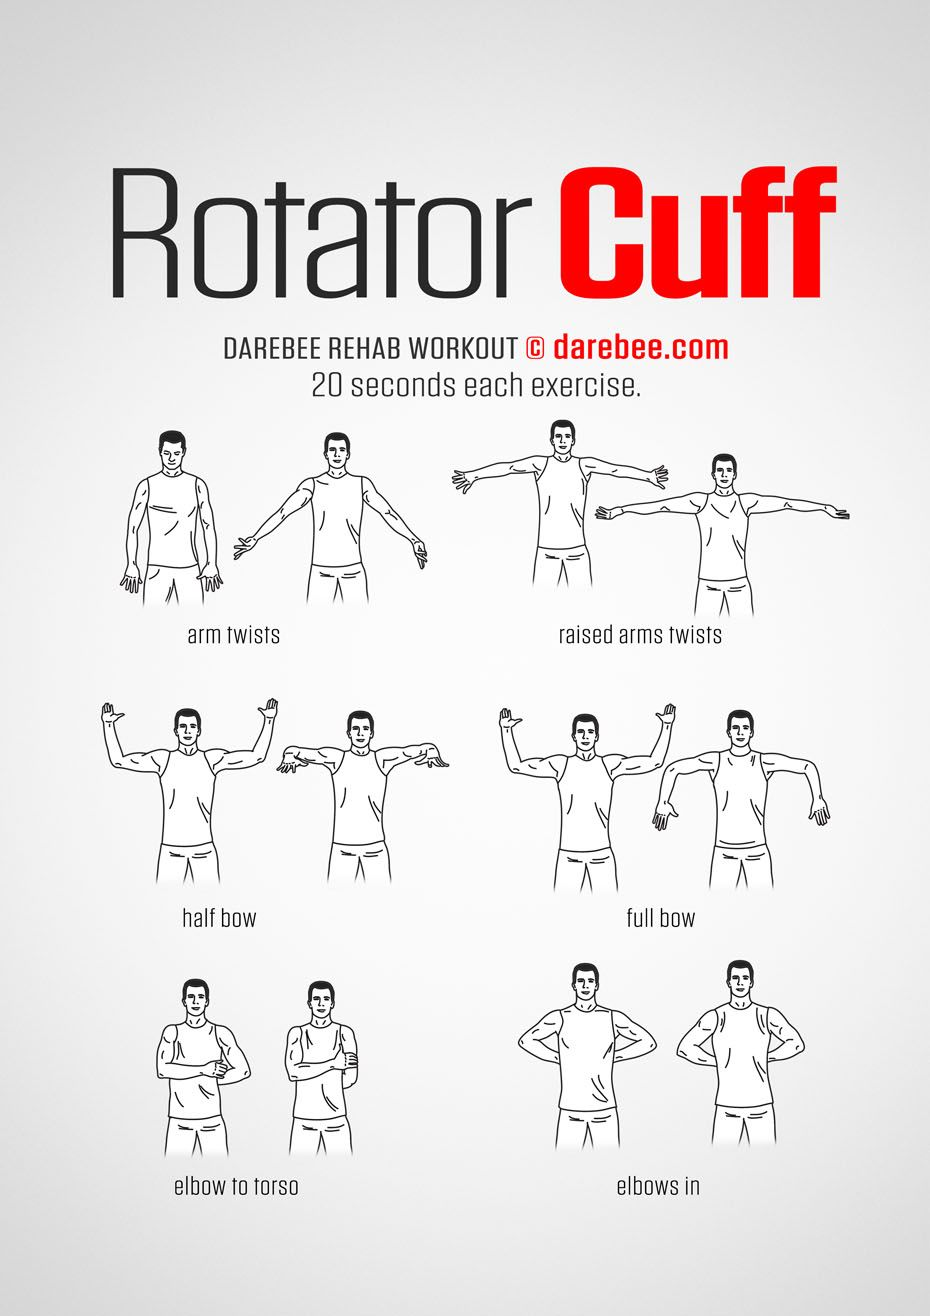 Rotator Cuff Workout Get Fit Darebee Workouts